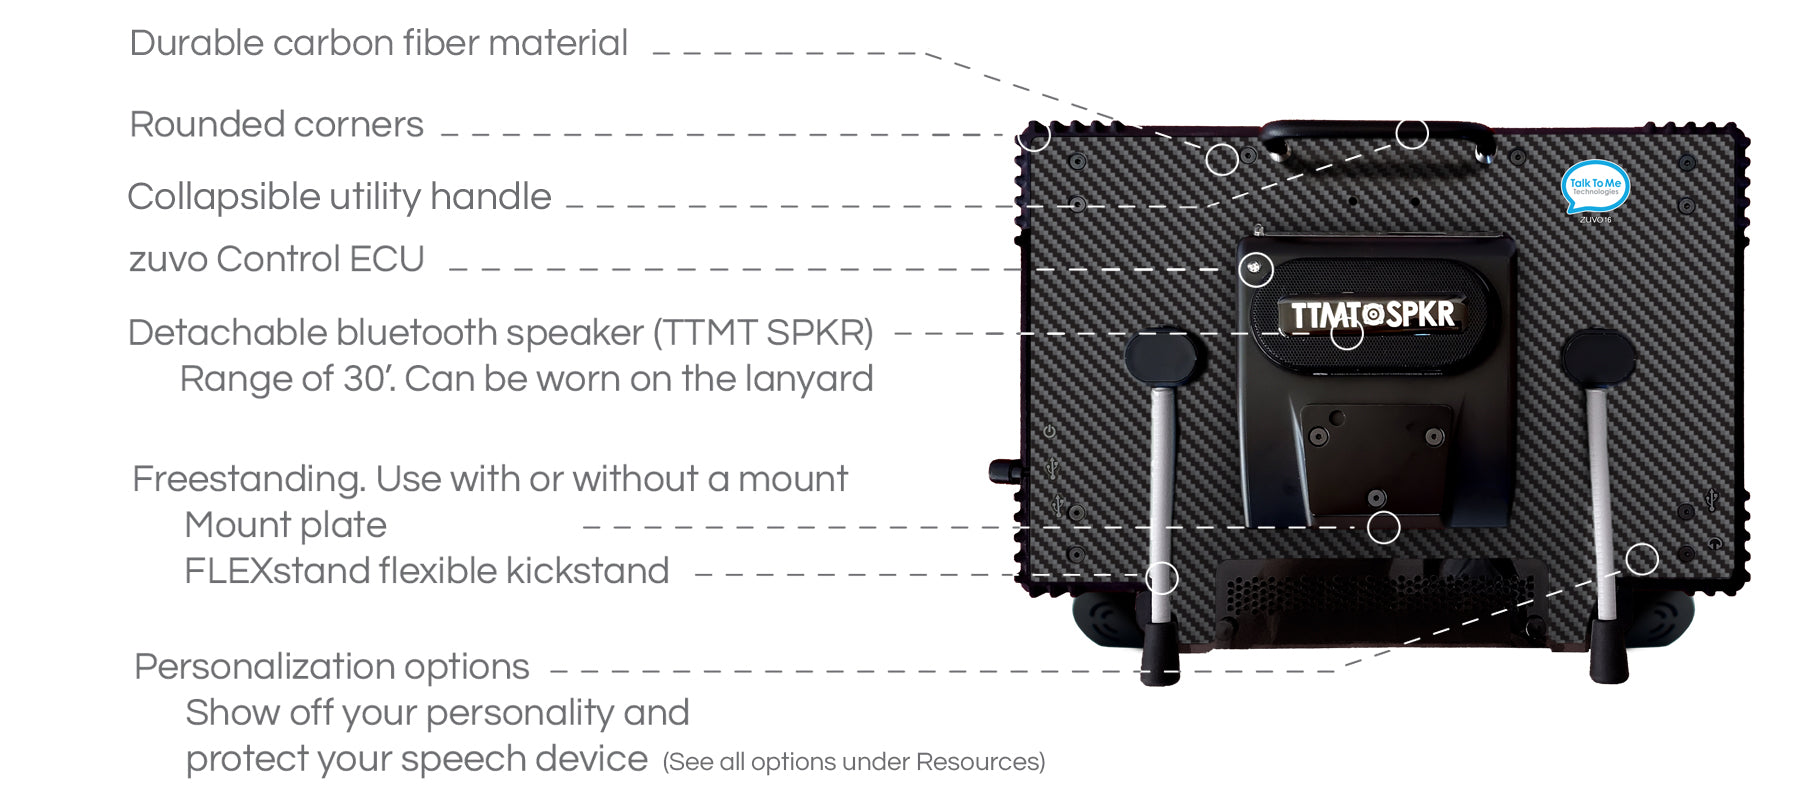 Durable carbon fiber material. Rounded corners. Collapsible utility handle. Zuvo control environmental control unit. Detachable bluetooth speaker with a range of thirty feet, Can be worn on the lanyard included. Freestanding. Use with or without a mount. Mount plate and Flexstand flexible kickstand. Personalization options. Show off your personality and protect your speech device.